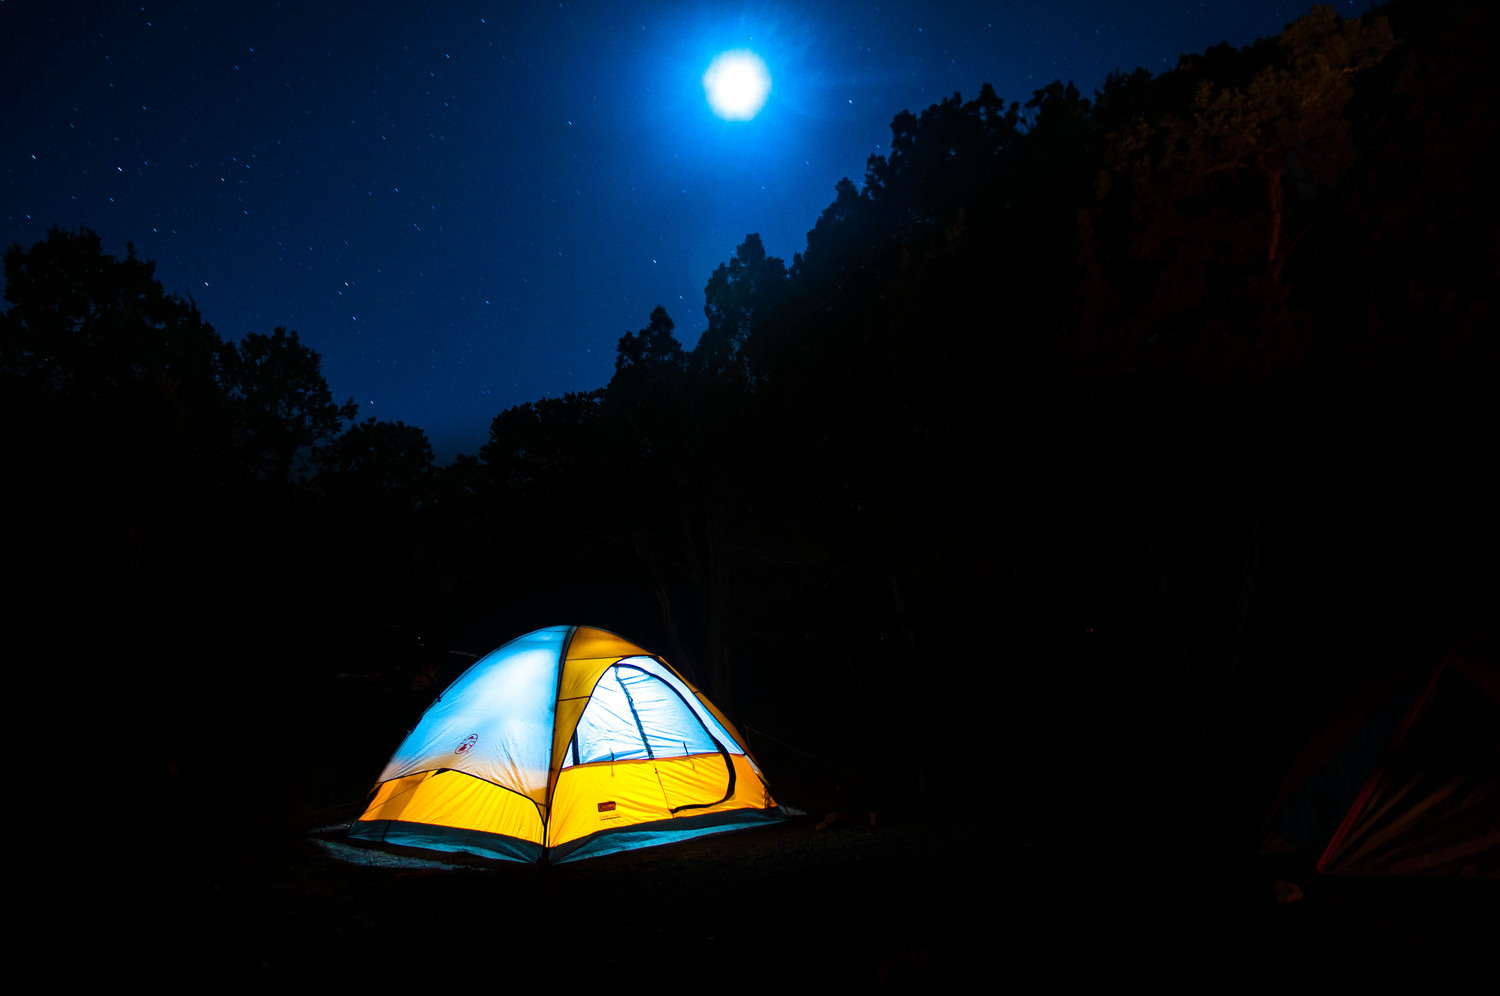 "Camping by moonlight | This photo is from our trip to vegas/grand canyon from the memorial day weekend. We didn't book the camp site but was lucky to get one of those ""first come first serve"" camp sites. The key is to reach early by 10AM or so and you can grab one of them. We camped there for a day and this is the <a href=""http://www.nps.gov/grca/planyourvisit/cg-sr.htm#CP_JUMP_153567"" rel=""nofollow"">desert view campsite</a>.  Katie did an amazing book cover for school project using this image: <a href=""http://www.flickr.com/photos/kmwillia1/7836013538/in/photostream"">www.flickr.com/photos/kmwillia1/7836013538/in/photostream</a> Illustration: <a href=""http://memorysongproject.wordpress.com/2012/11/22/10/"" rel=""nofollow"">memorysongproject.wordpress.com/2012/11/22/10/</a>  Usage:  1. <a href=""http://nj1015.com/going-camping-nj-launches-new-247-reservation-system/"" rel=""nofollow"">nj1015.com/going-camping-nj-launches-new-247-reservation-...</a> 2. <a href=""http://cfrankie.wordpress.com/2012/11/09/solo-camping-to-coldly-go/"" rel=""nofollow"">cfrankie.wordpress.com/2012/11/09/solo-camping-to-coldly-go/</a> 3. <a href=""http://kensingtonbk.com/kids/want-to-go-camping-in-prospect-park-heres-how"" rel=""nofollow"">kensingtonbk.com/kids/want-to-go-camping-in-prospect-park...</a>"